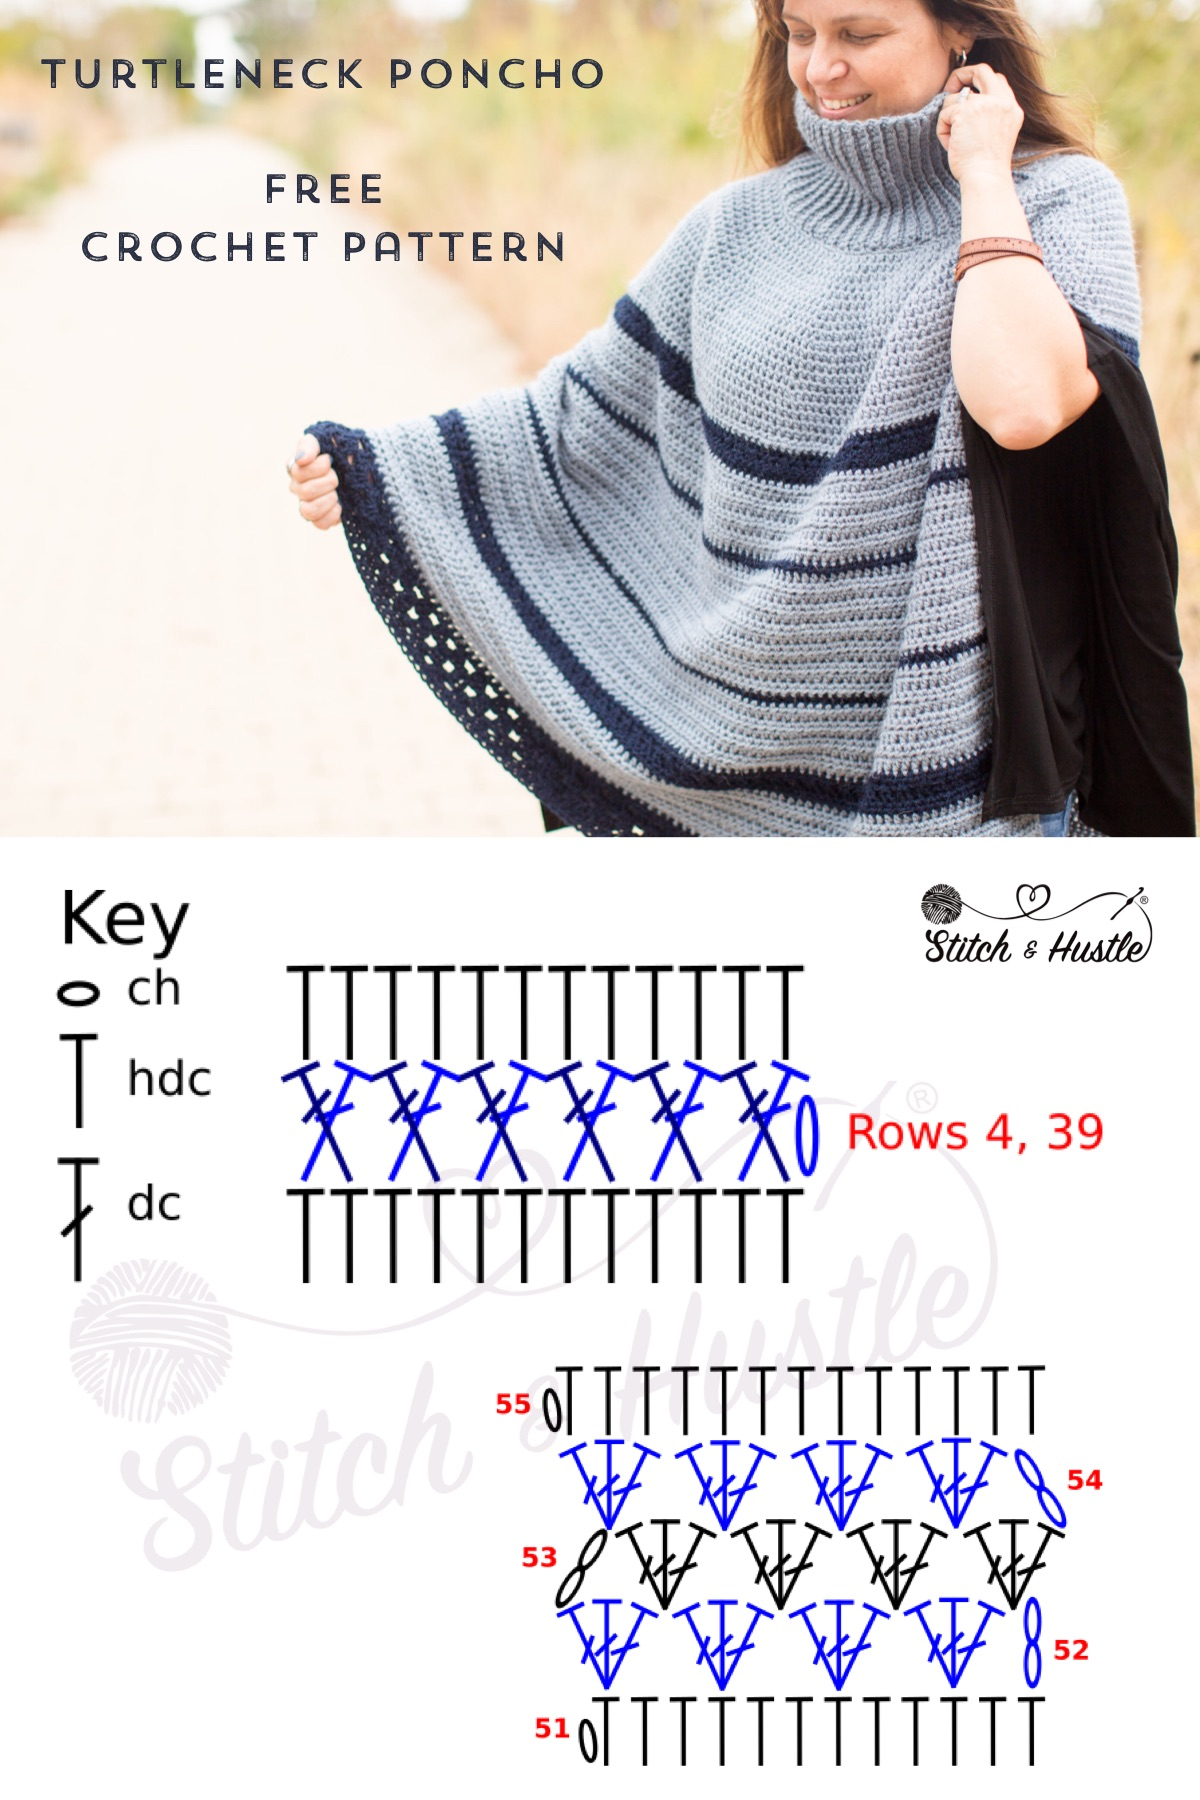 turtleneck_poncho_free_crochet_pattern_1.jpg